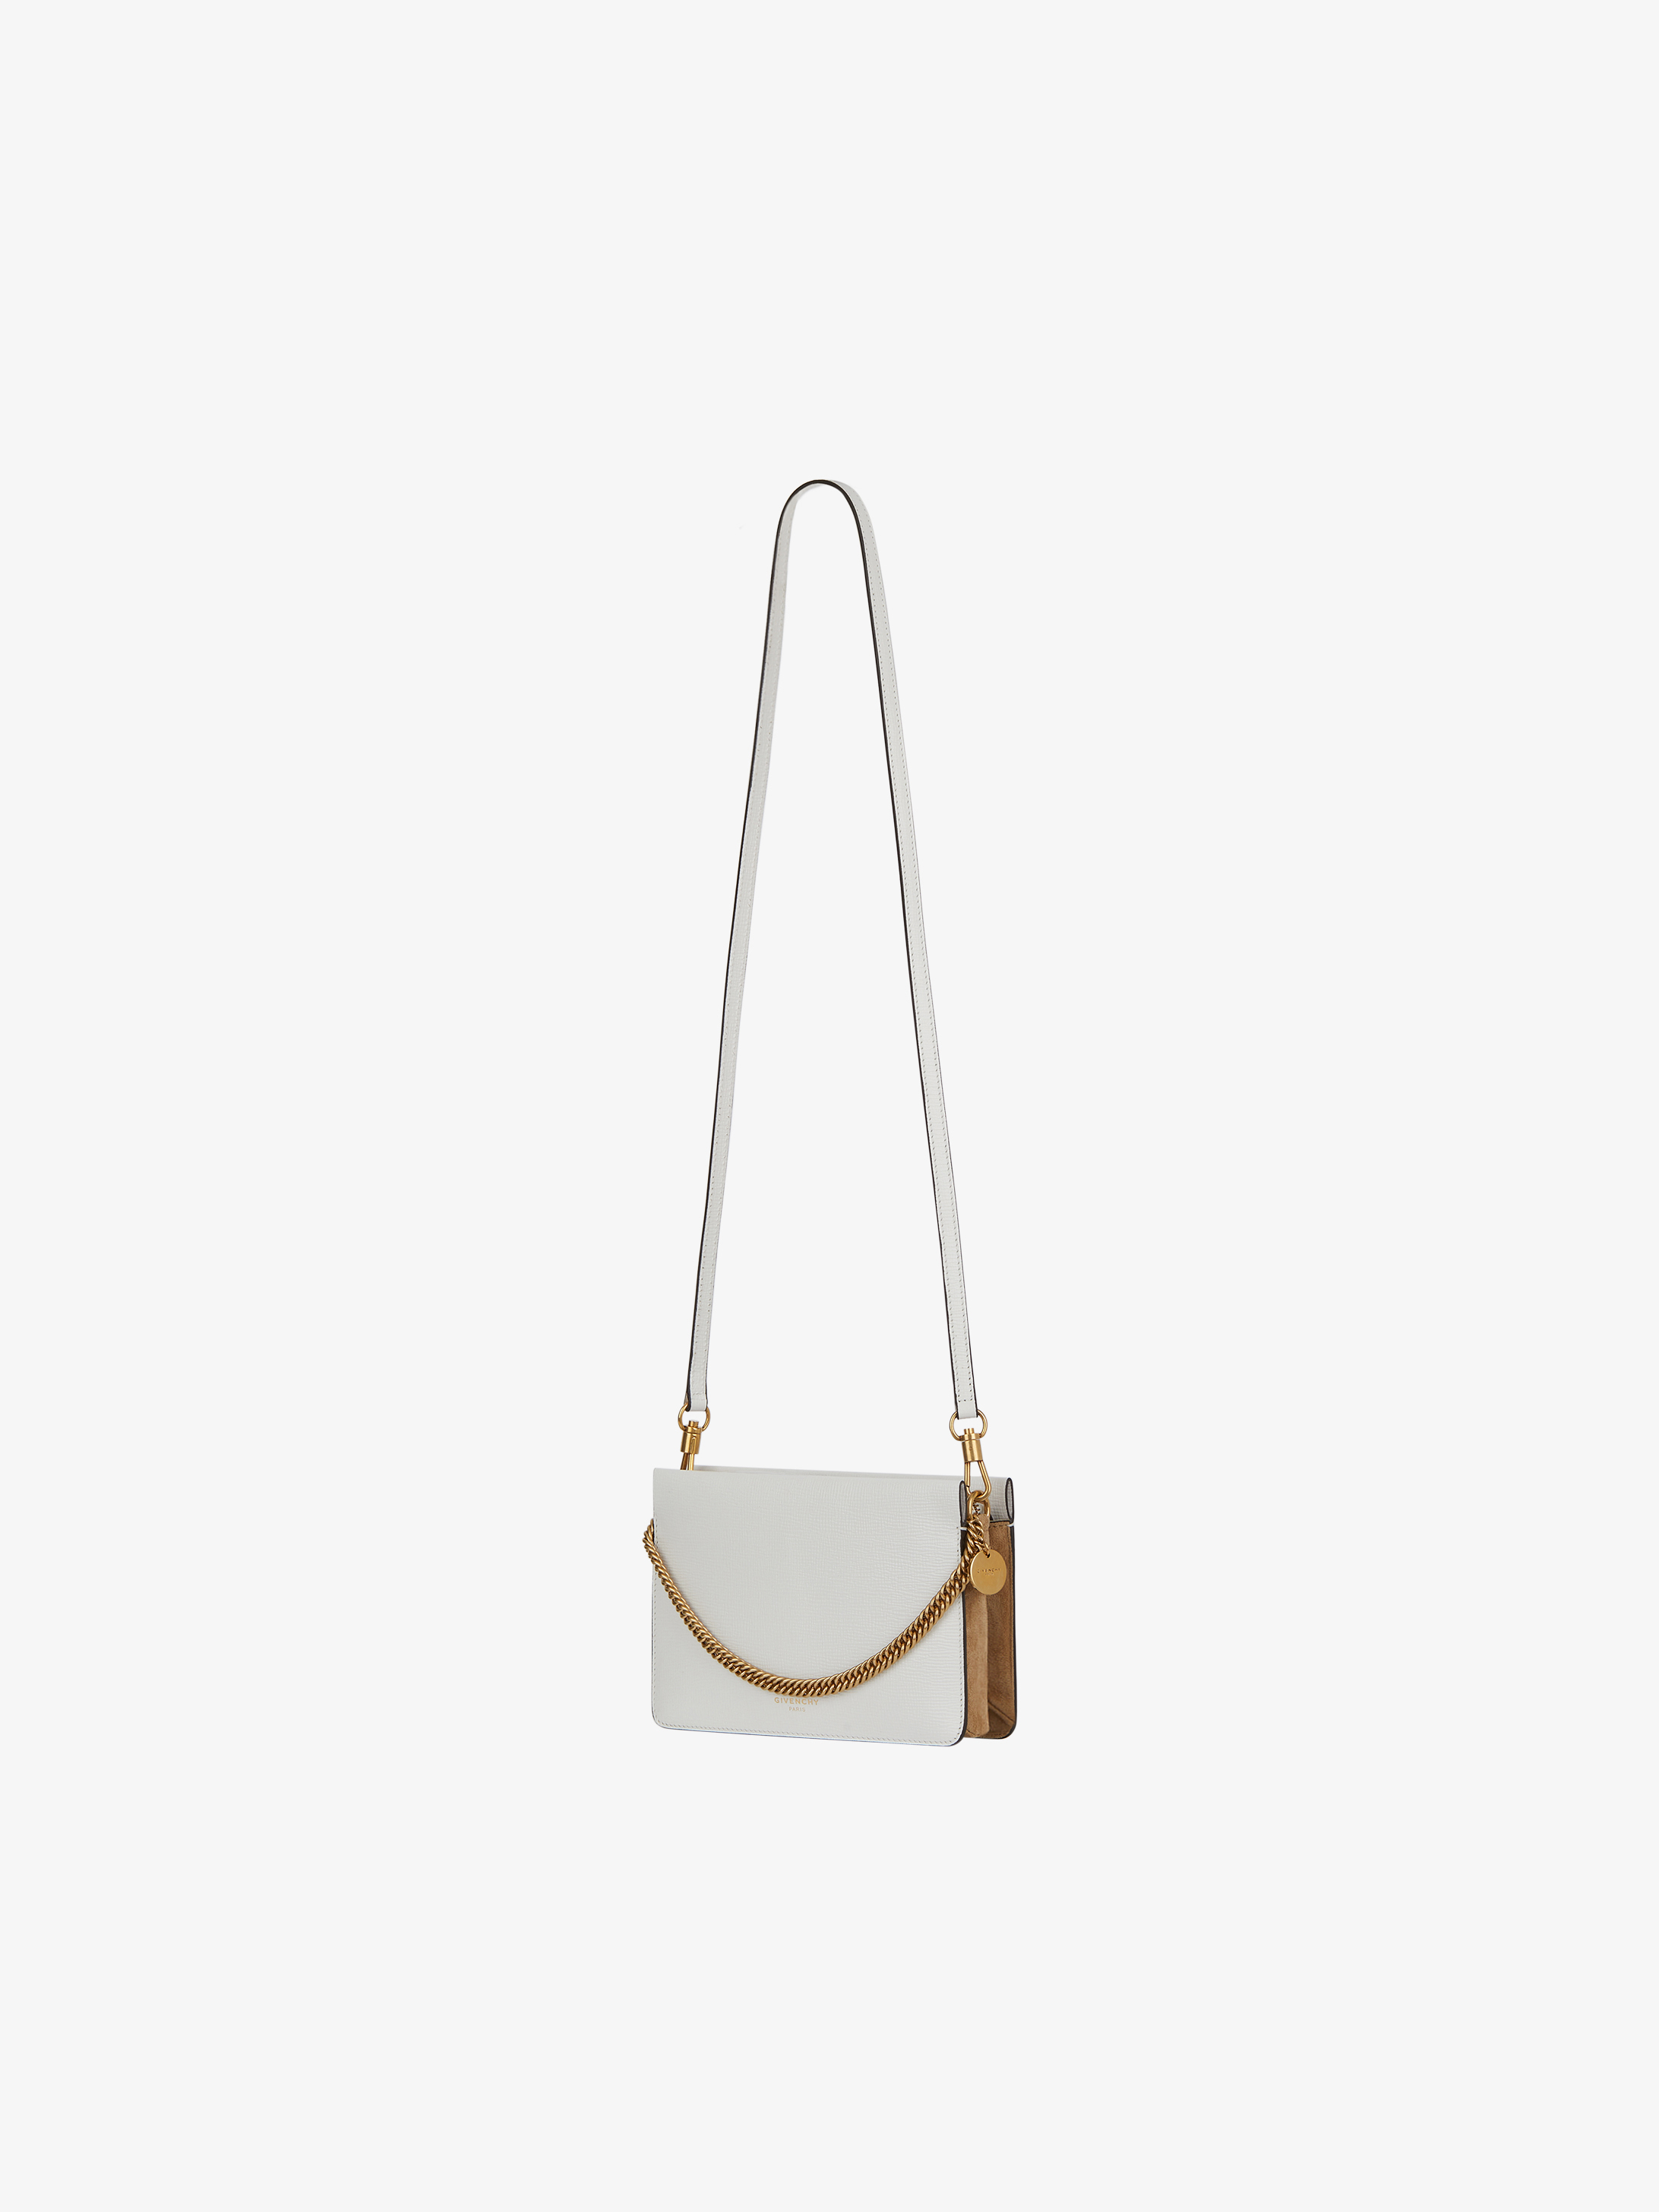 Two-toned Cross3 bag in leather and suede